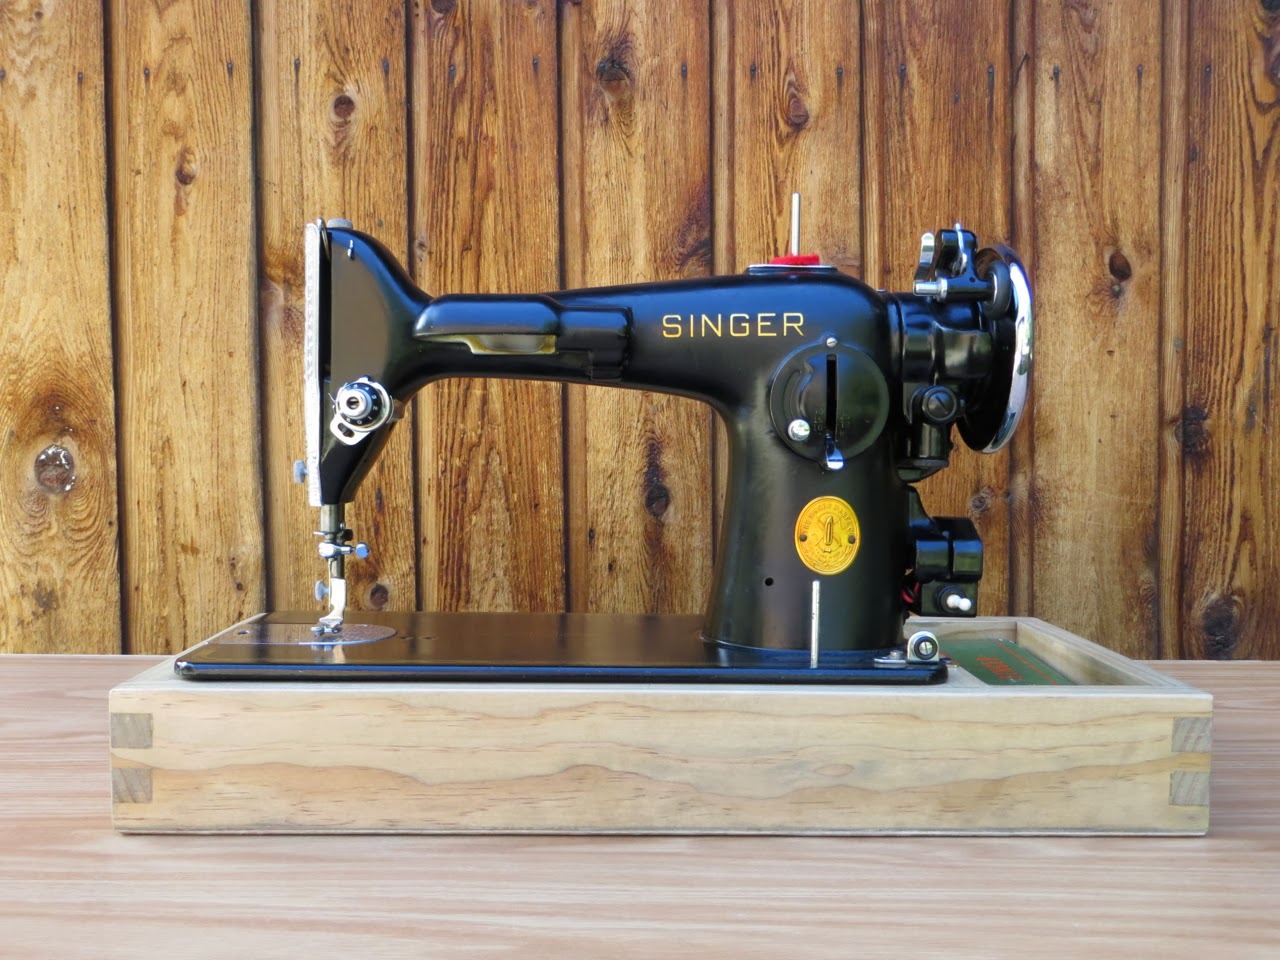 The Project Lady Singer Sewing Machine Wood Base